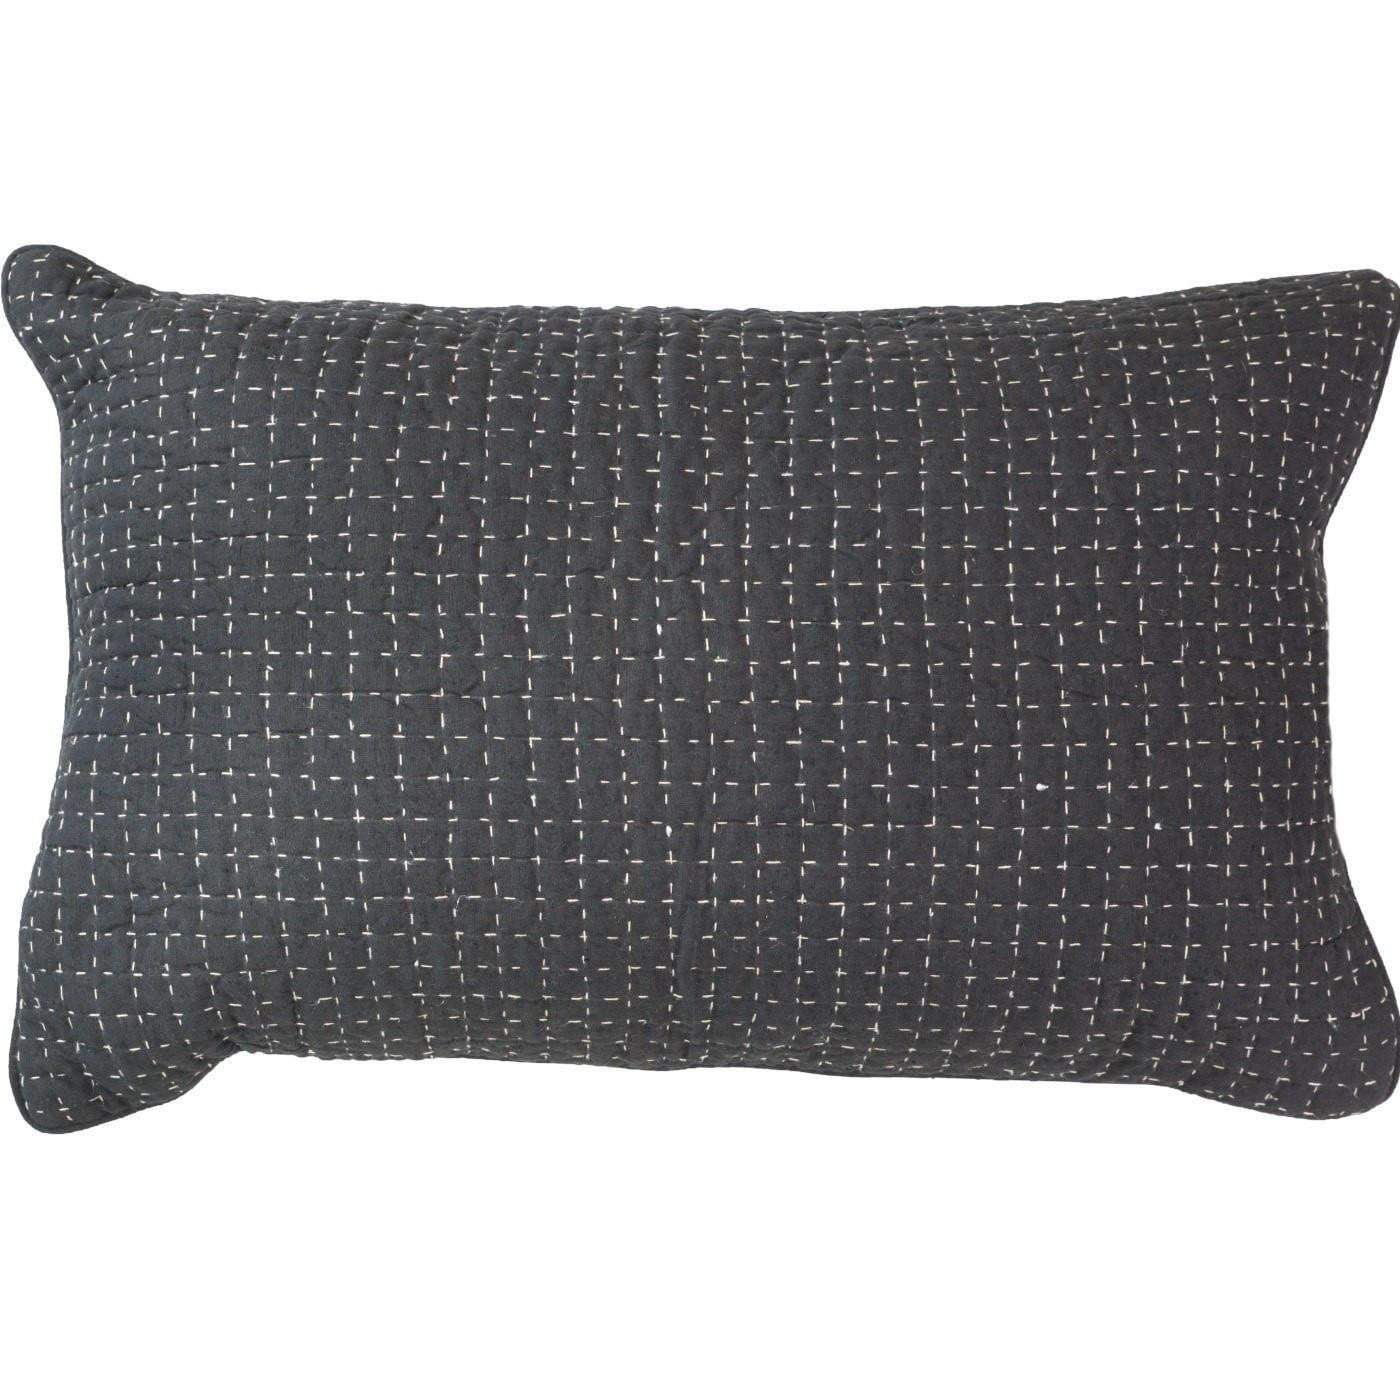 Bandhini Homewear Design Sham Cushion Earth Silver / Primitive Tribe / 18 x 27 Gudri Stitch Black Sham 46x69cm